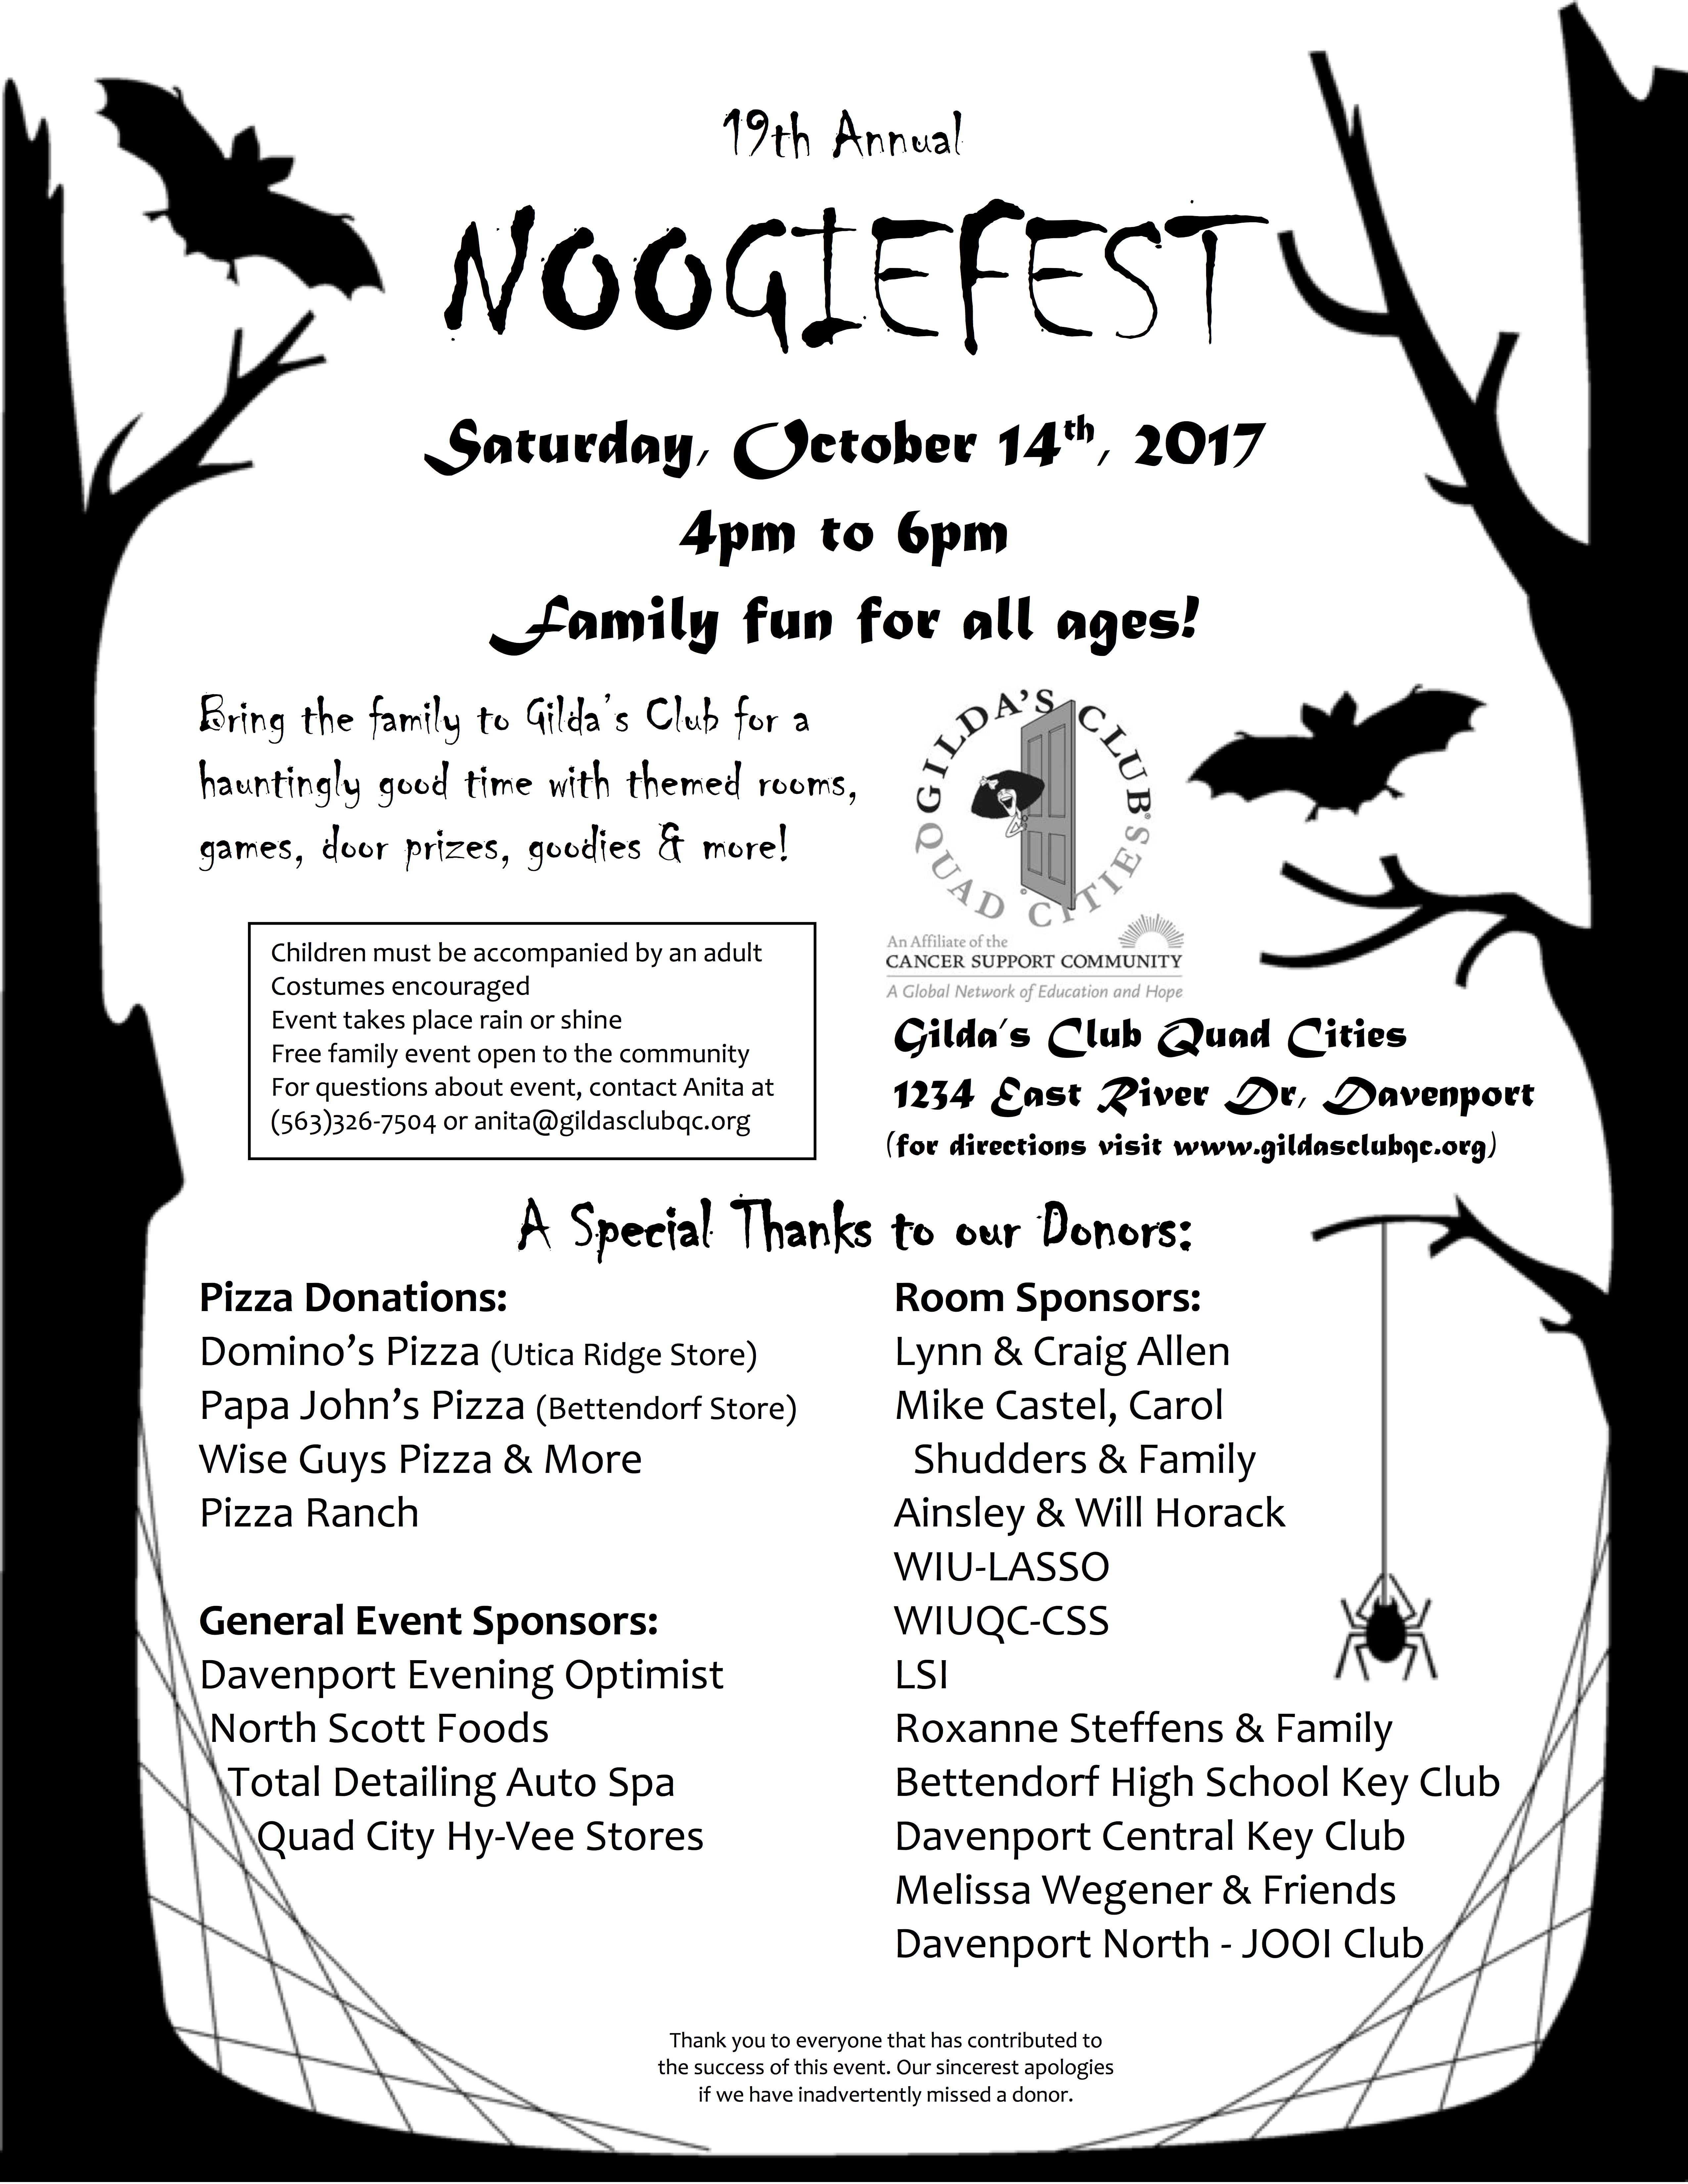 19th Annual Noogiefest - Muscatine Community School District